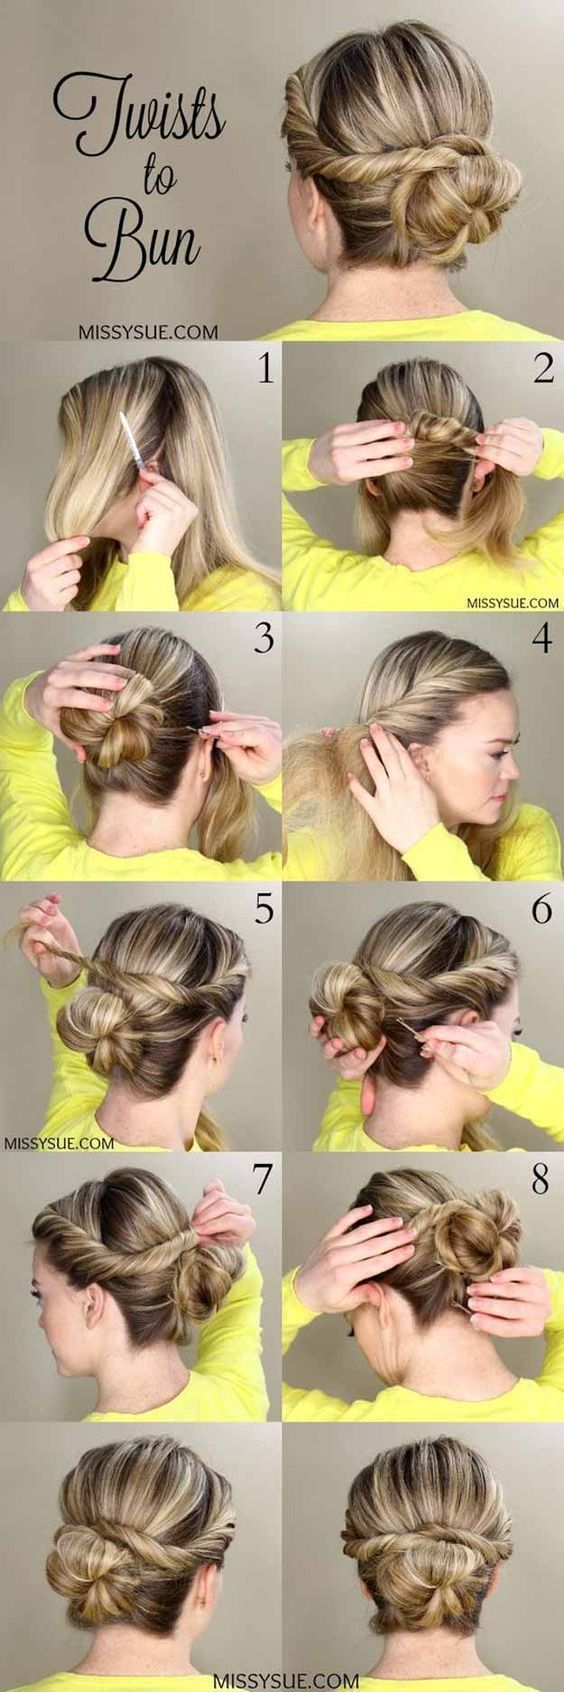 Best pinterest hair tutorials twists to bun check out these